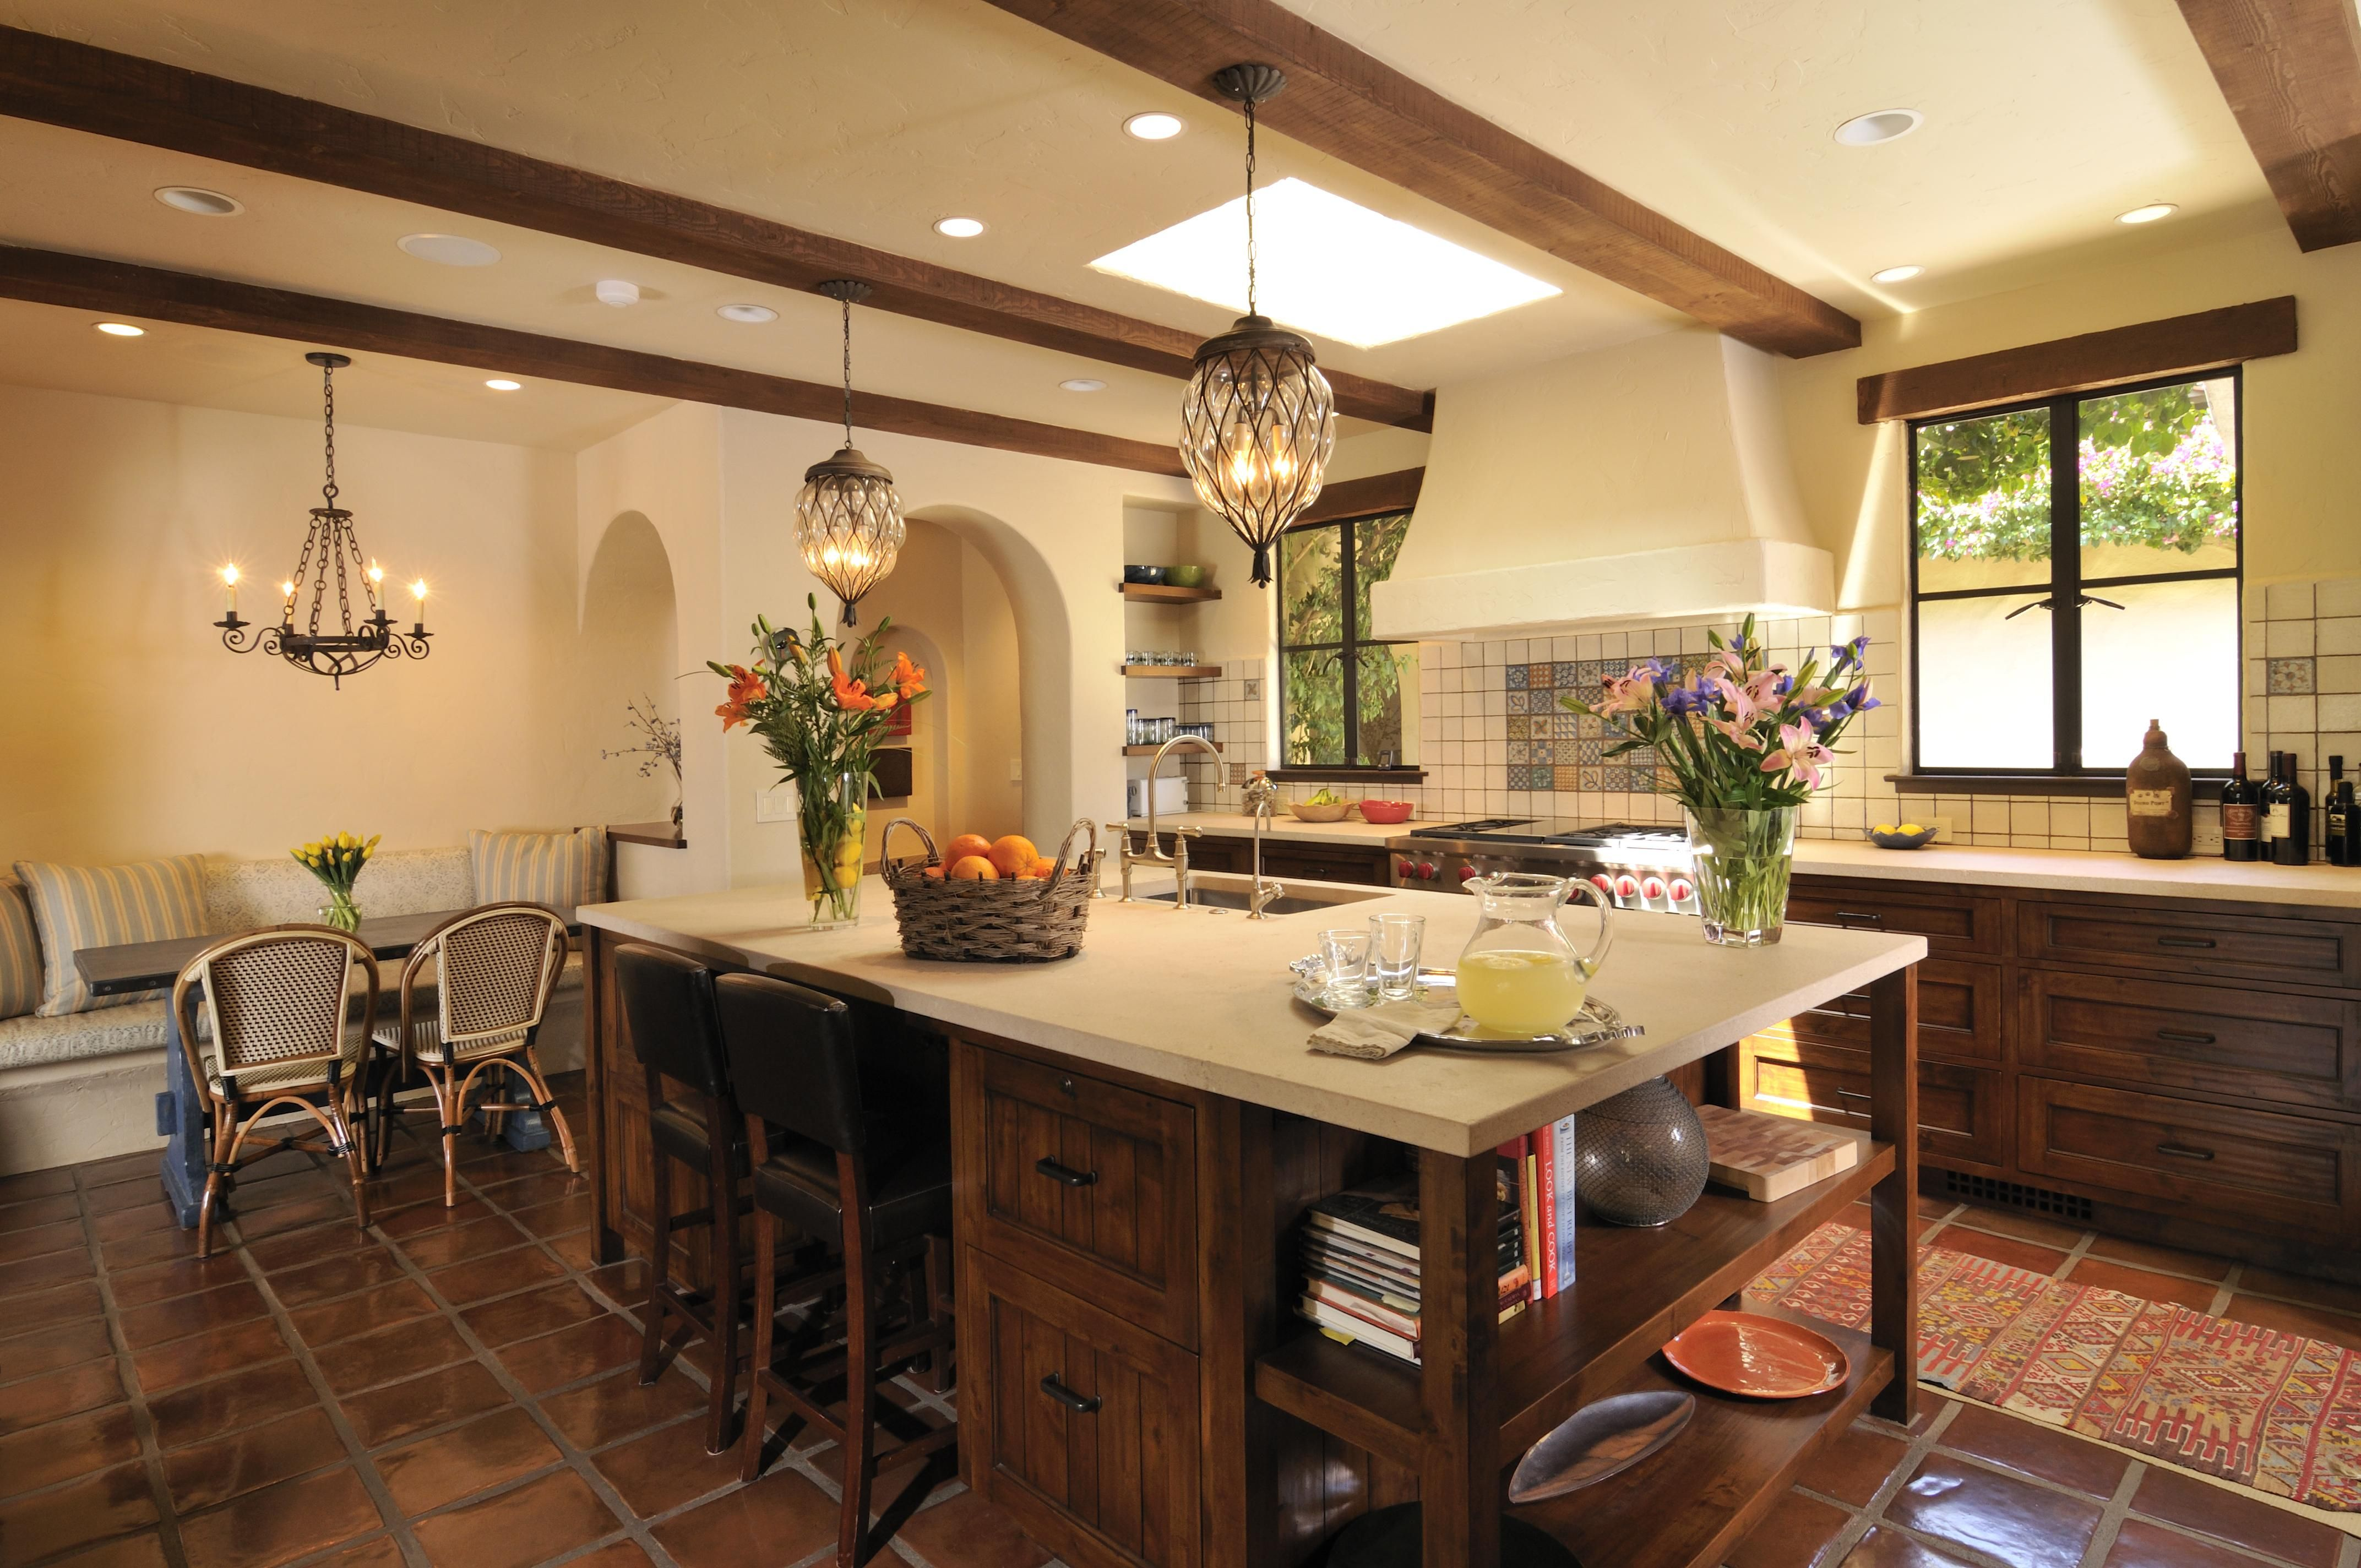 spanish kitchens #4 - spanish colonial revival kitchen